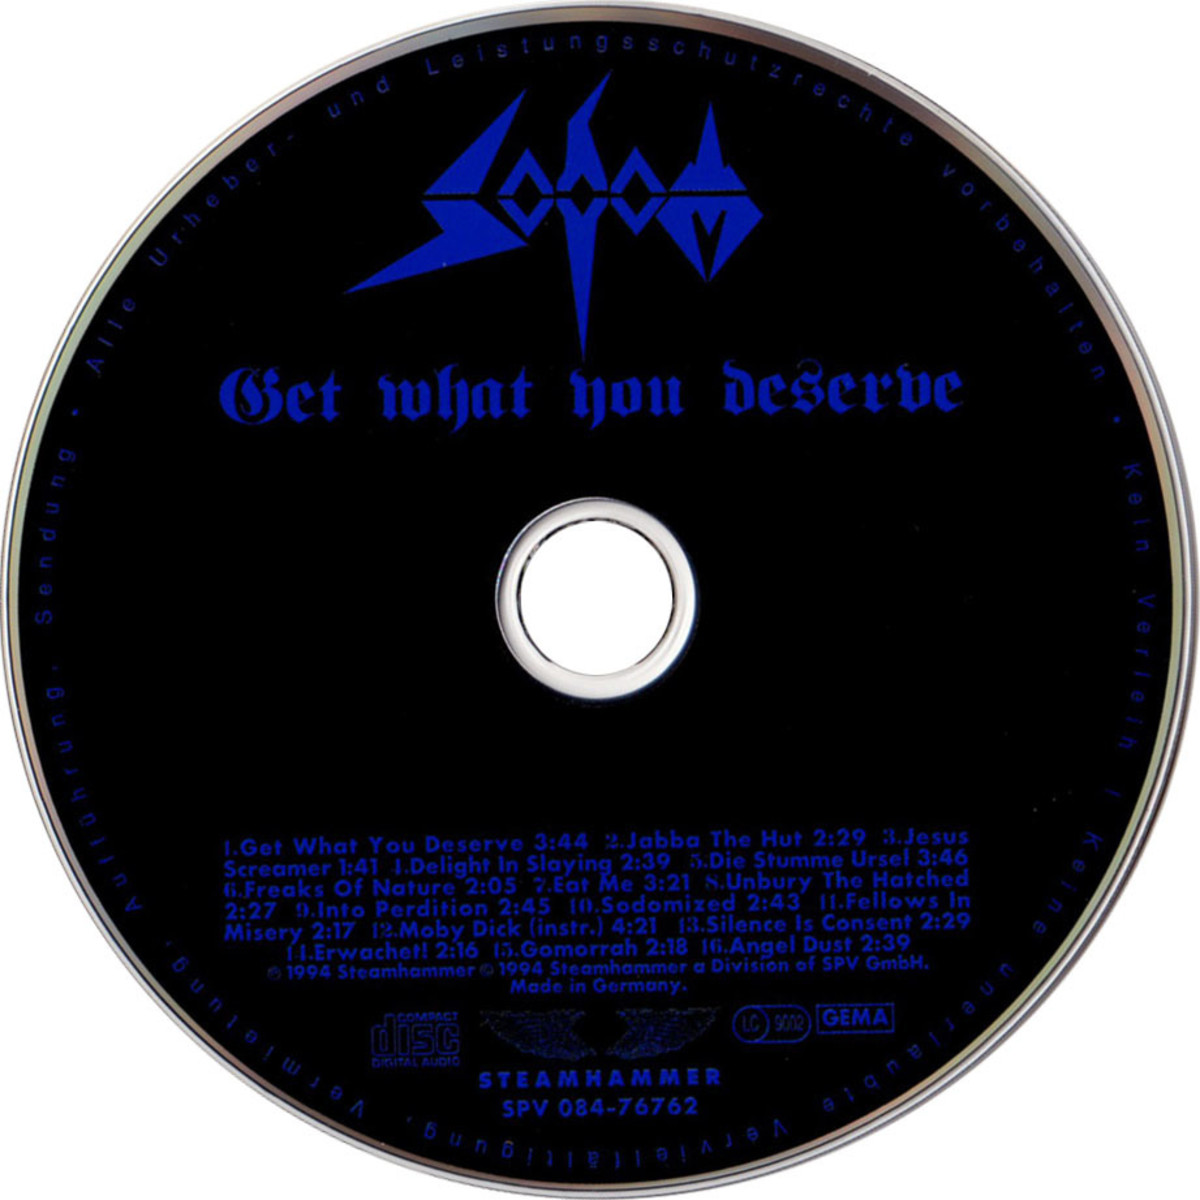 review-of-the-album-get-what-you-deserve-by-german-thrash-metal-band-sodom